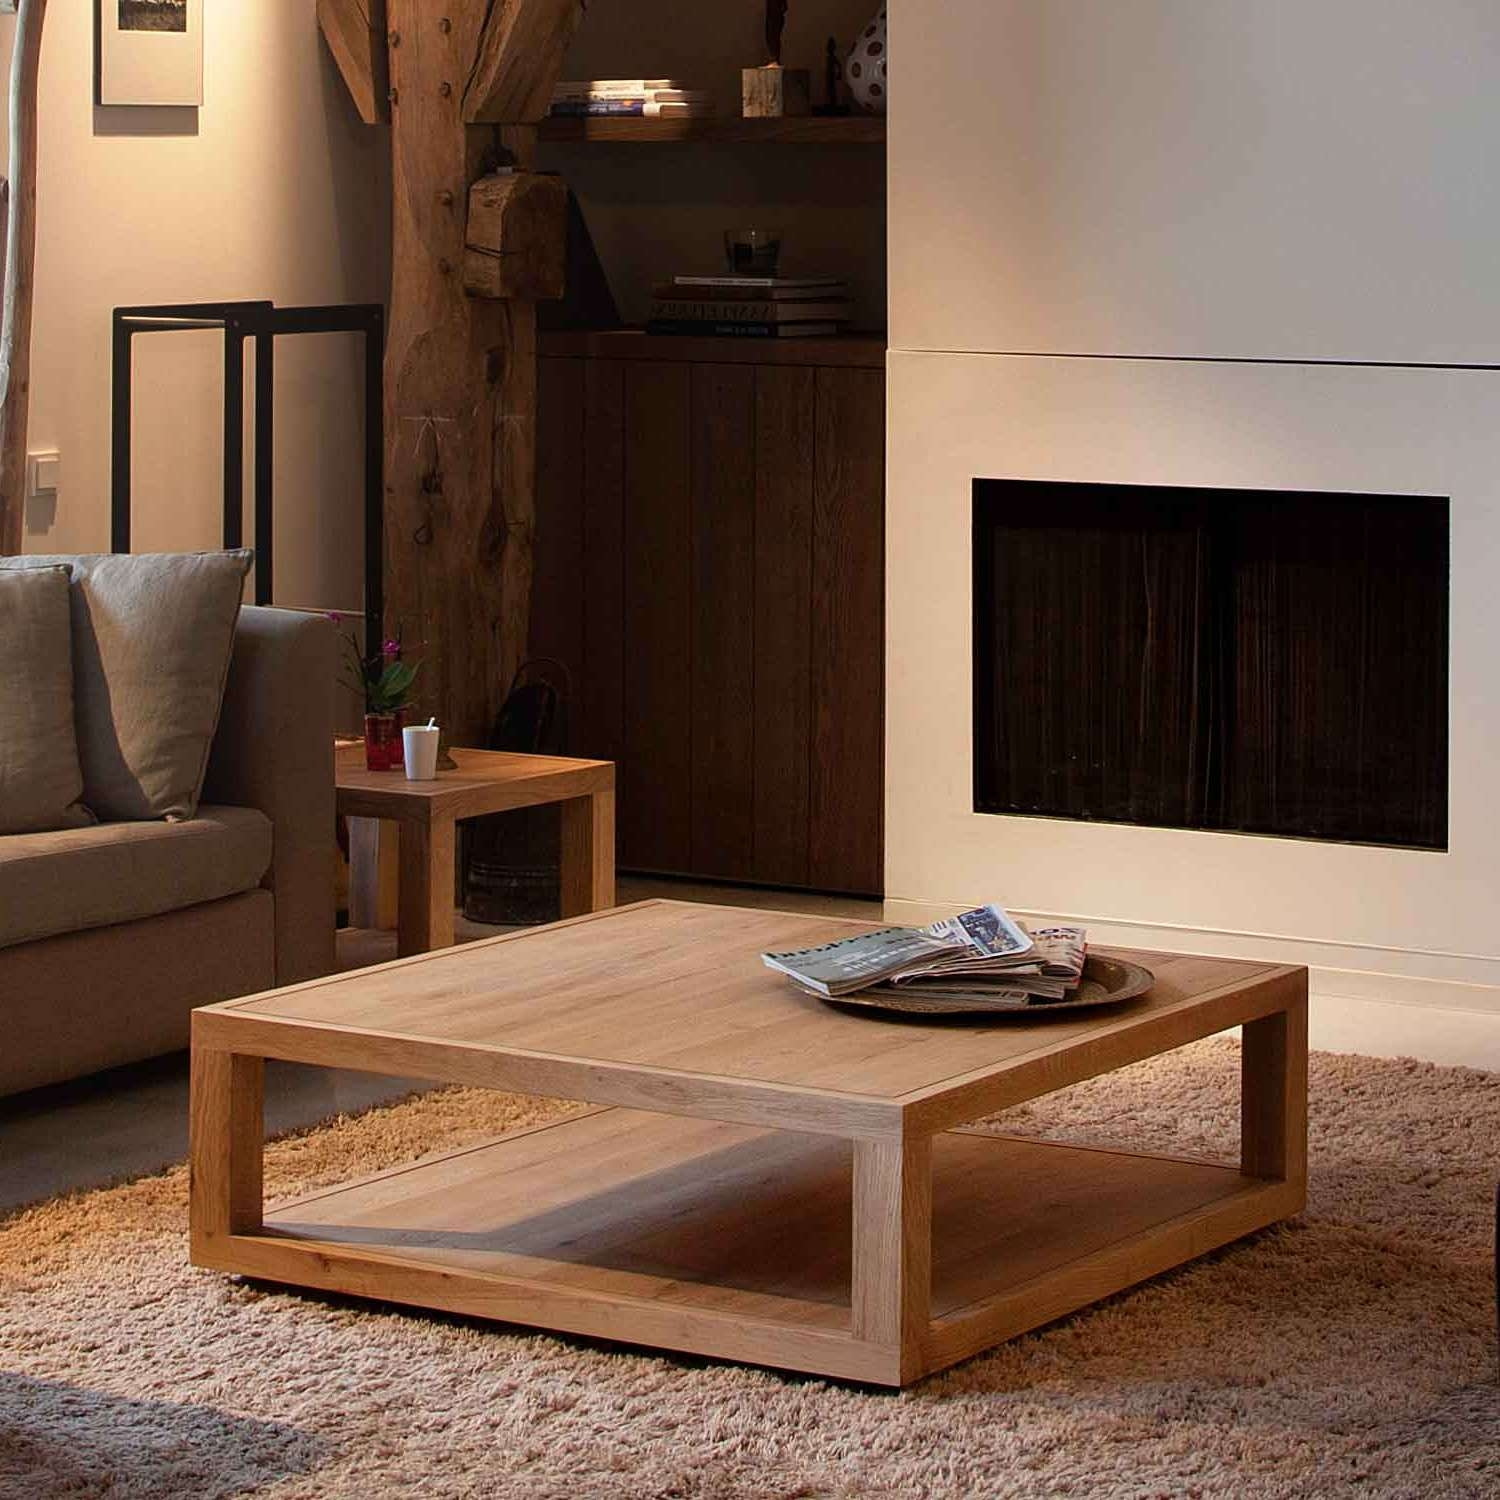 Modern Oak Coffee Table – High Grade Oak Wood Material, Clear With Regard To 2017 Contemporary Oak Coffee Table (View 13 of 20)